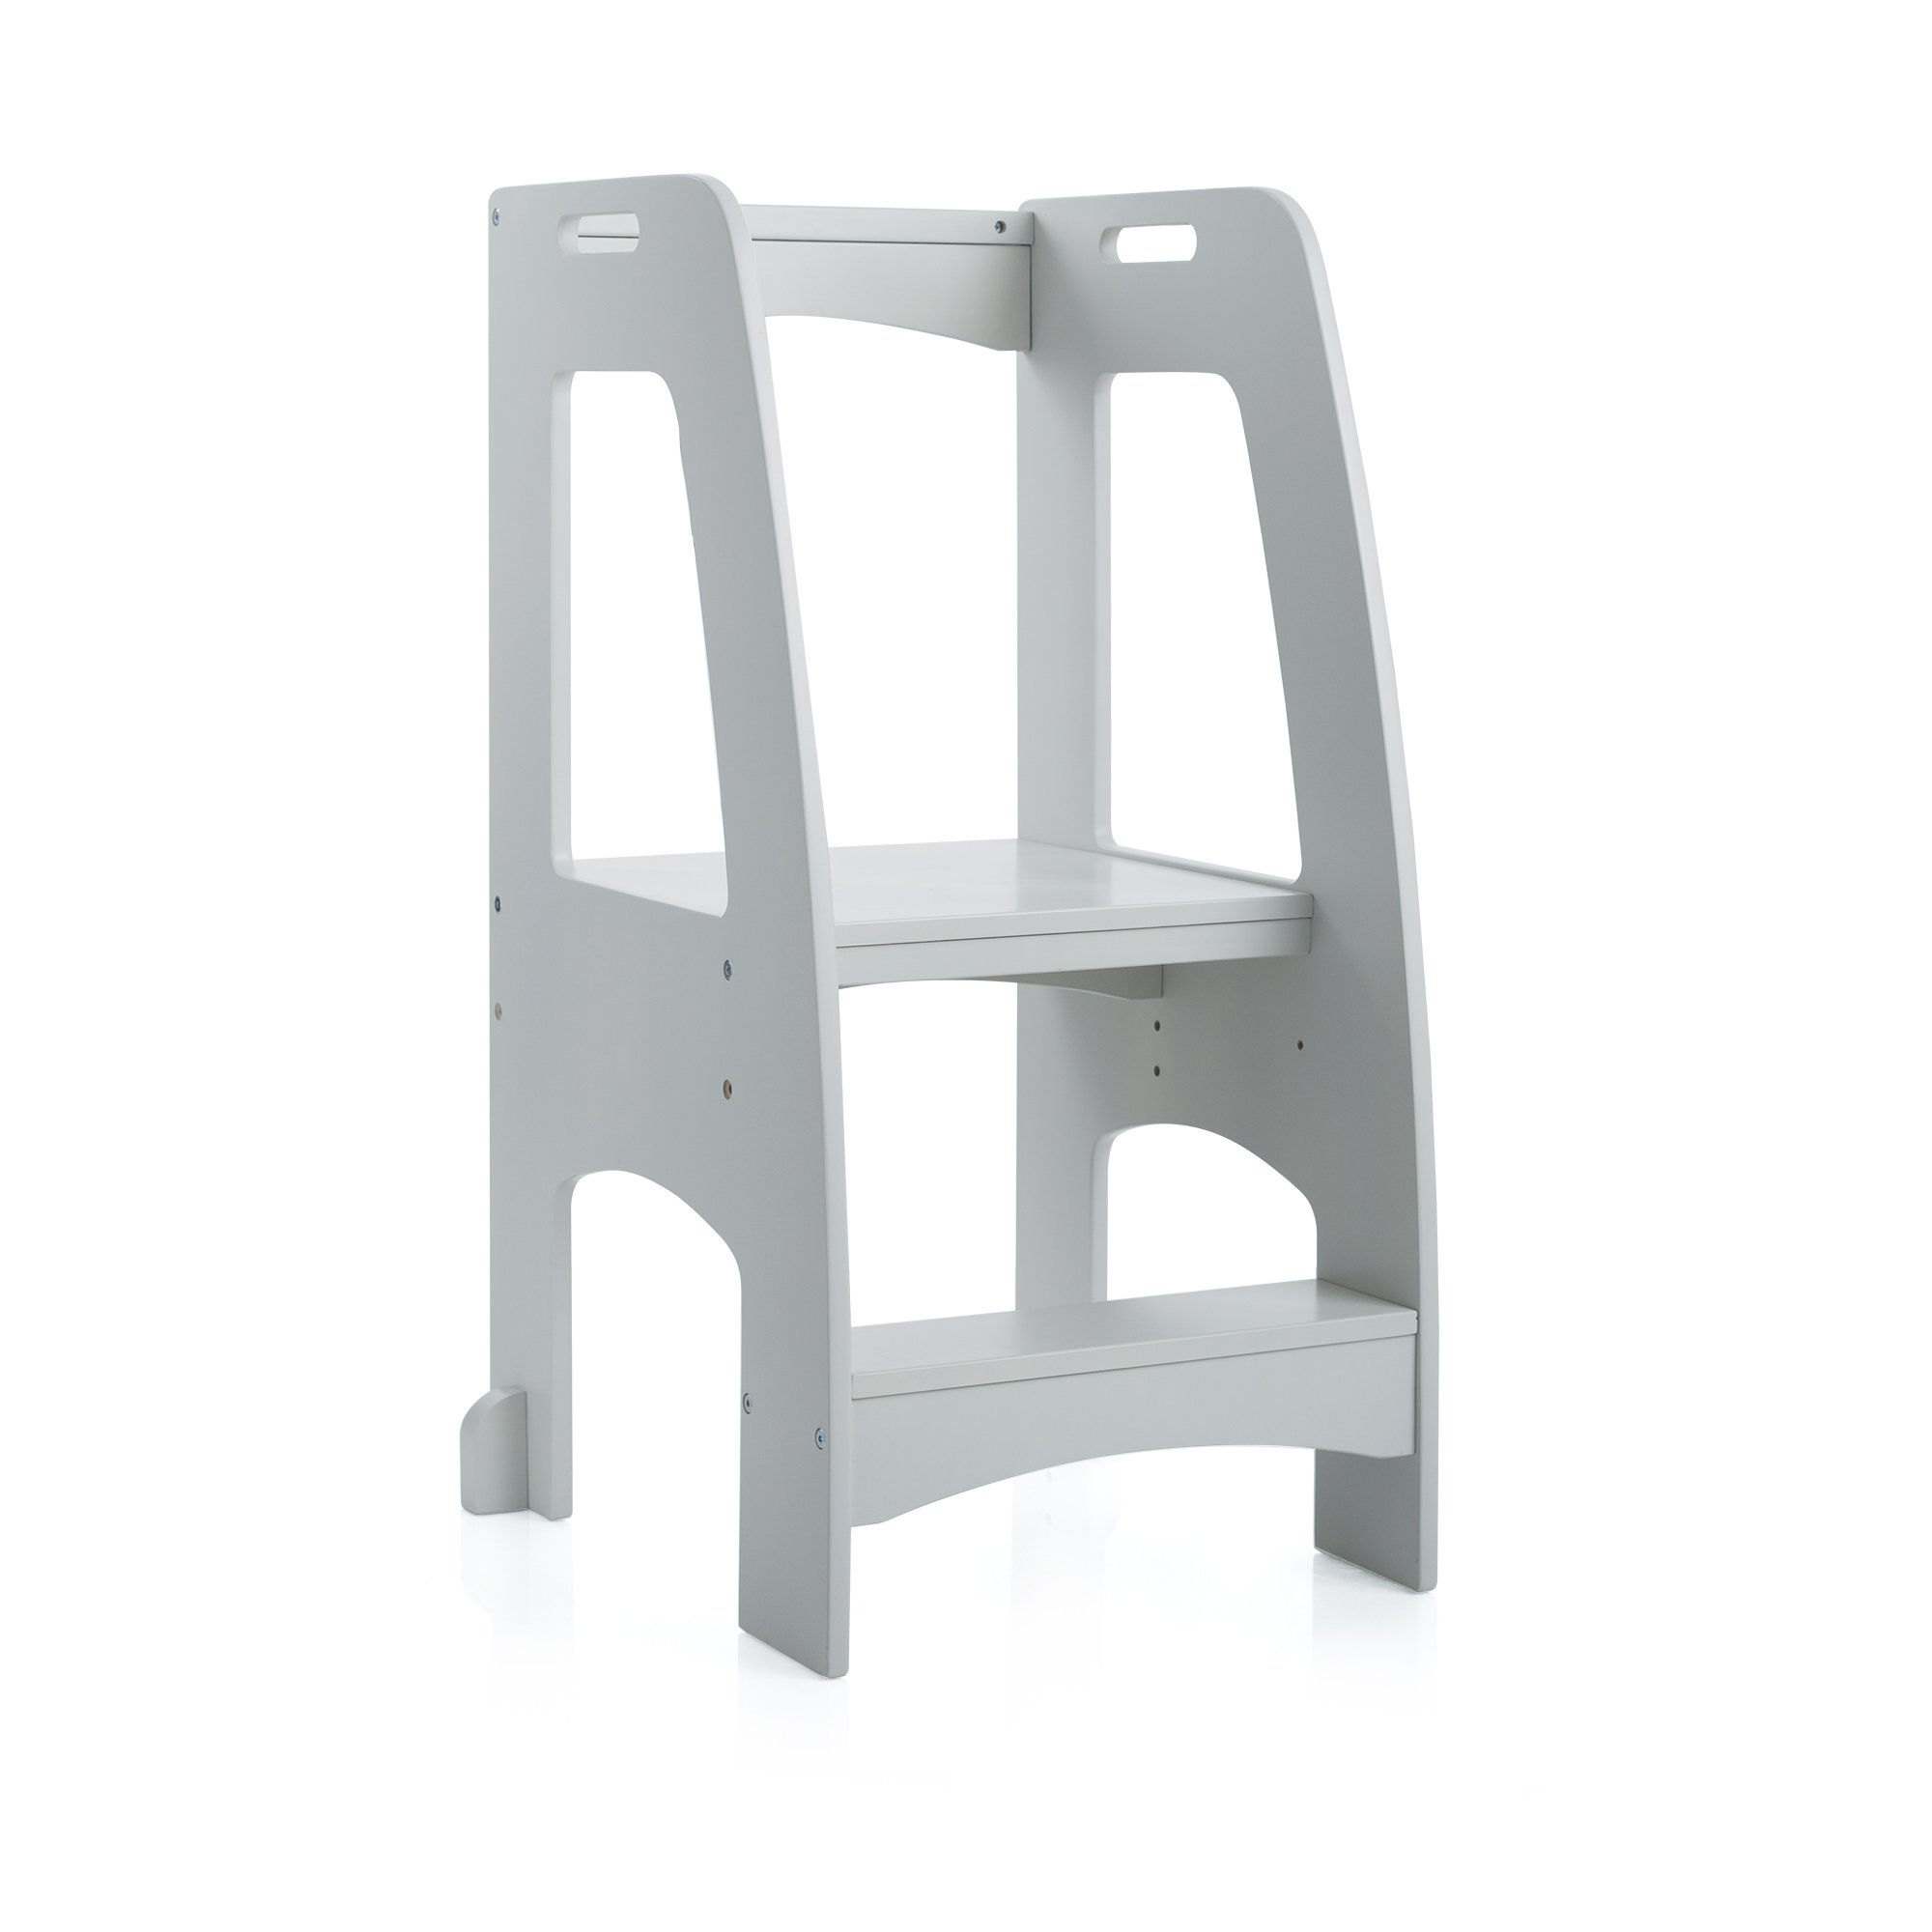 Guidecraft Step Up Kitchen Helper - Gray: Adjustable Height Wooden Baking Stool For Children - Kids Furniture by Guidecraft (Image #1)